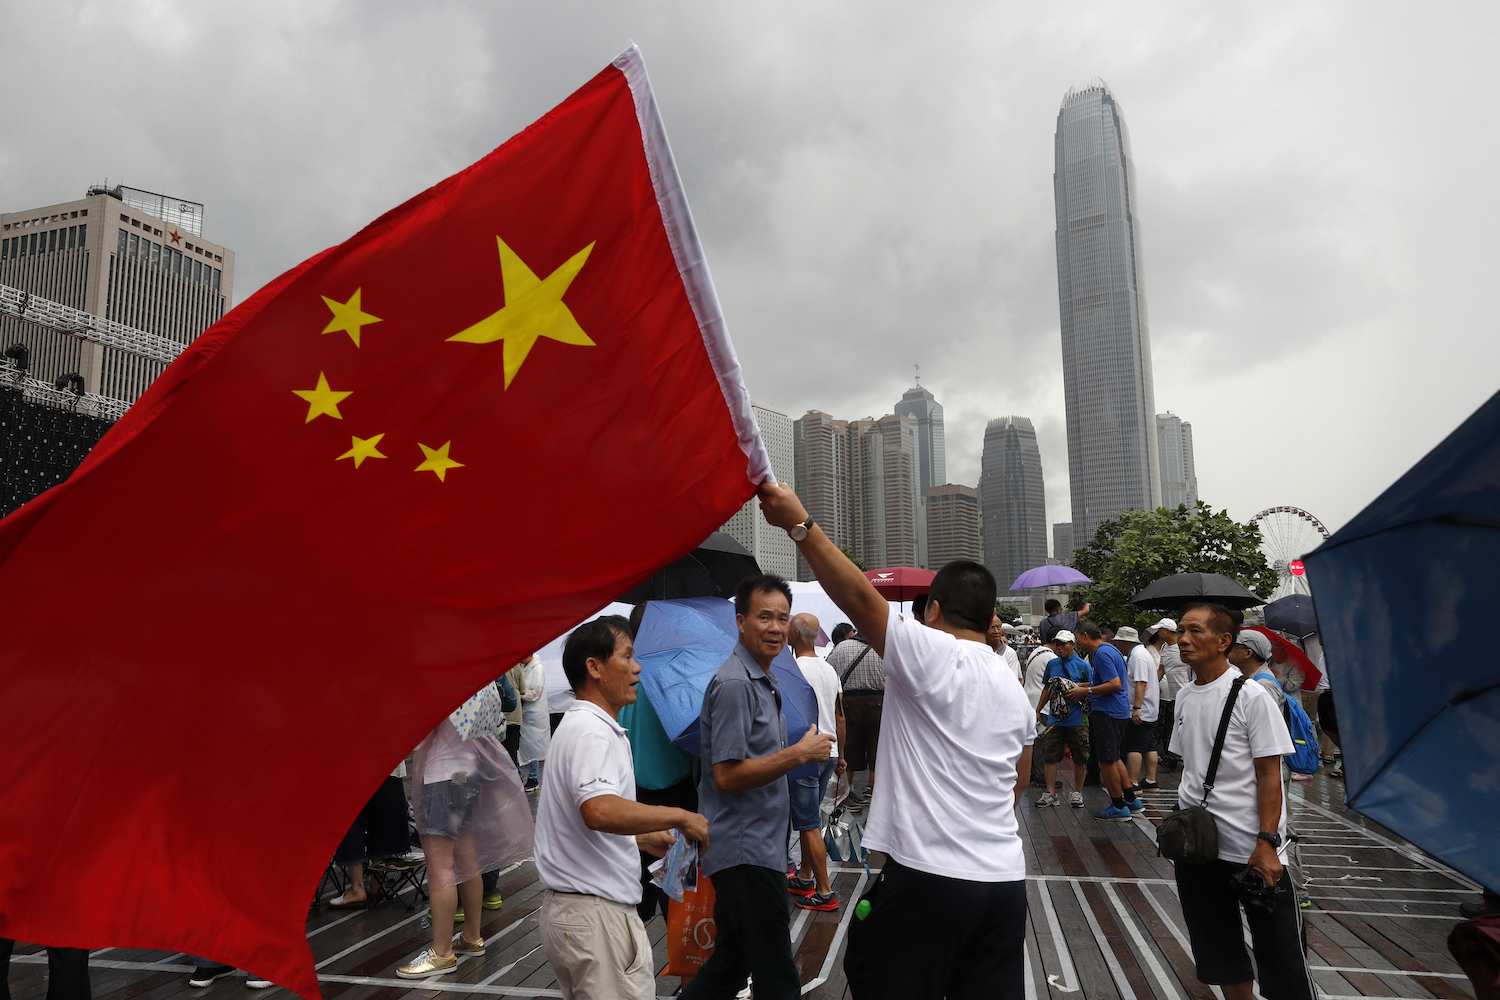 A pro-China supporter waves a Chinese national flag during a counter-rally in support of the police in Hong Kong on Saturday. (AP Photo)